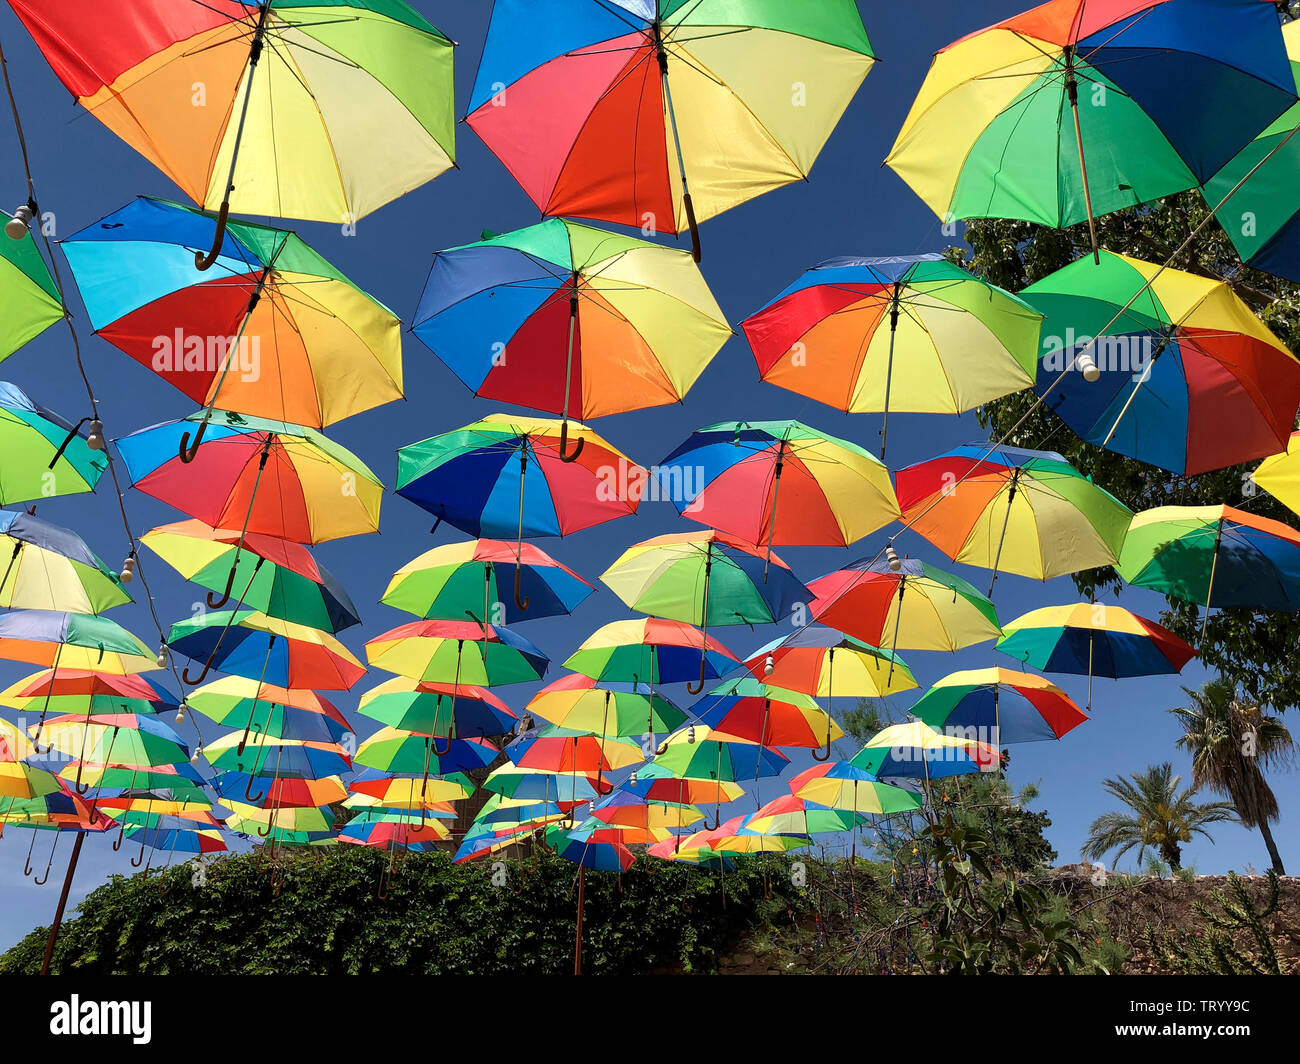 Display of umbrellas above a square in the city of Famagusta in the Turkish Republic of Northern Cyprus. Stock Photo